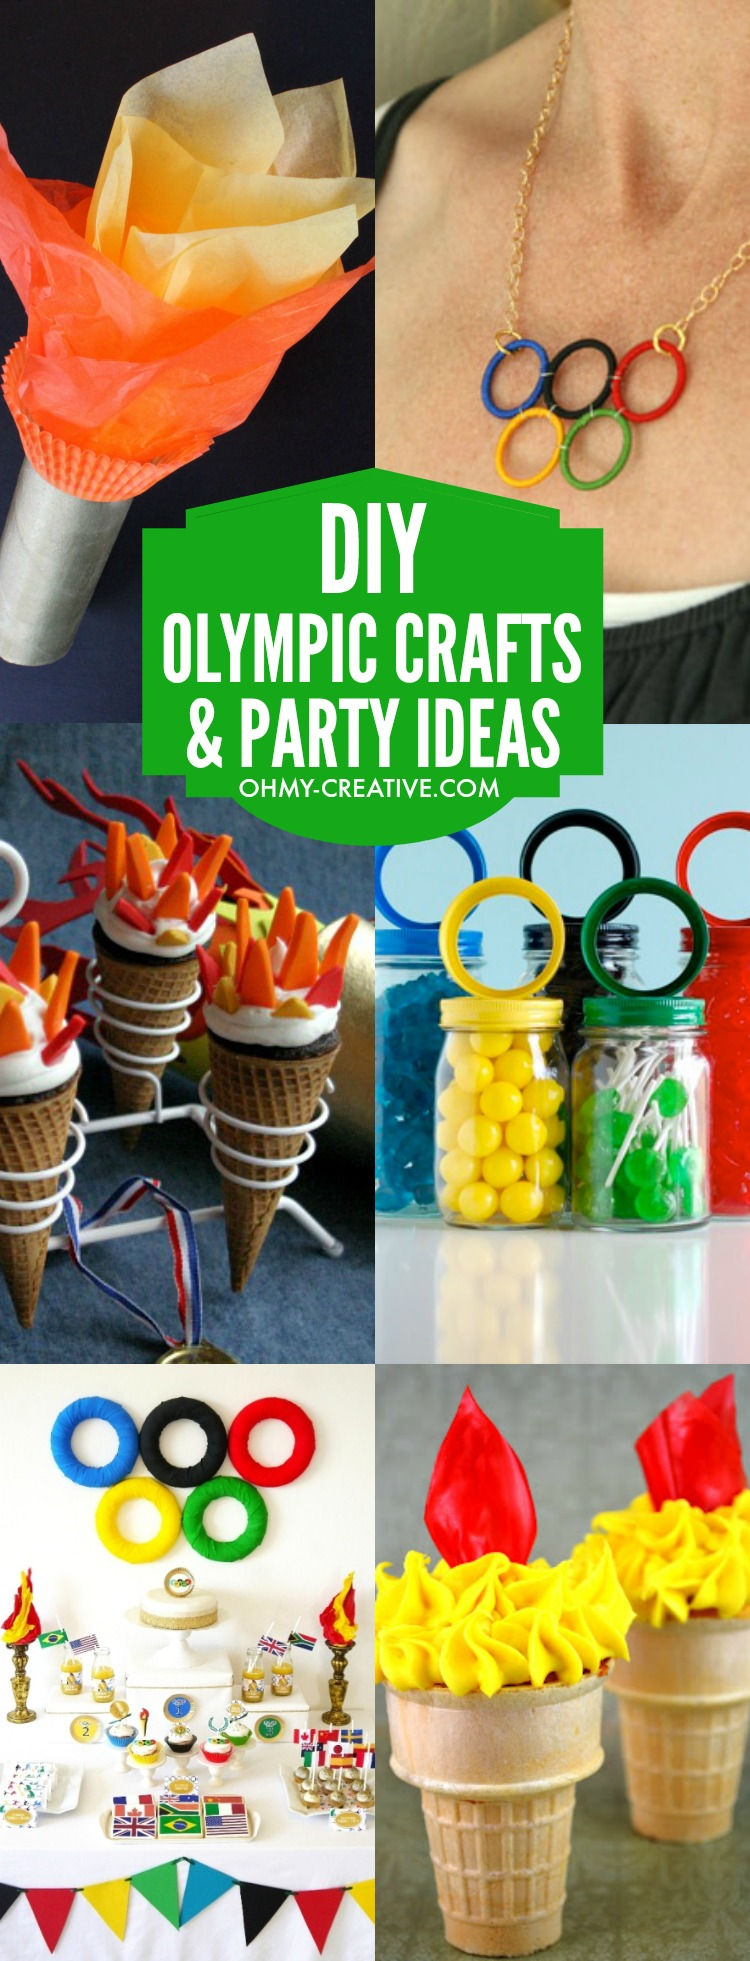 Diy Party Decorations For Adults diy olympic crafts and party ideas - oh my creative